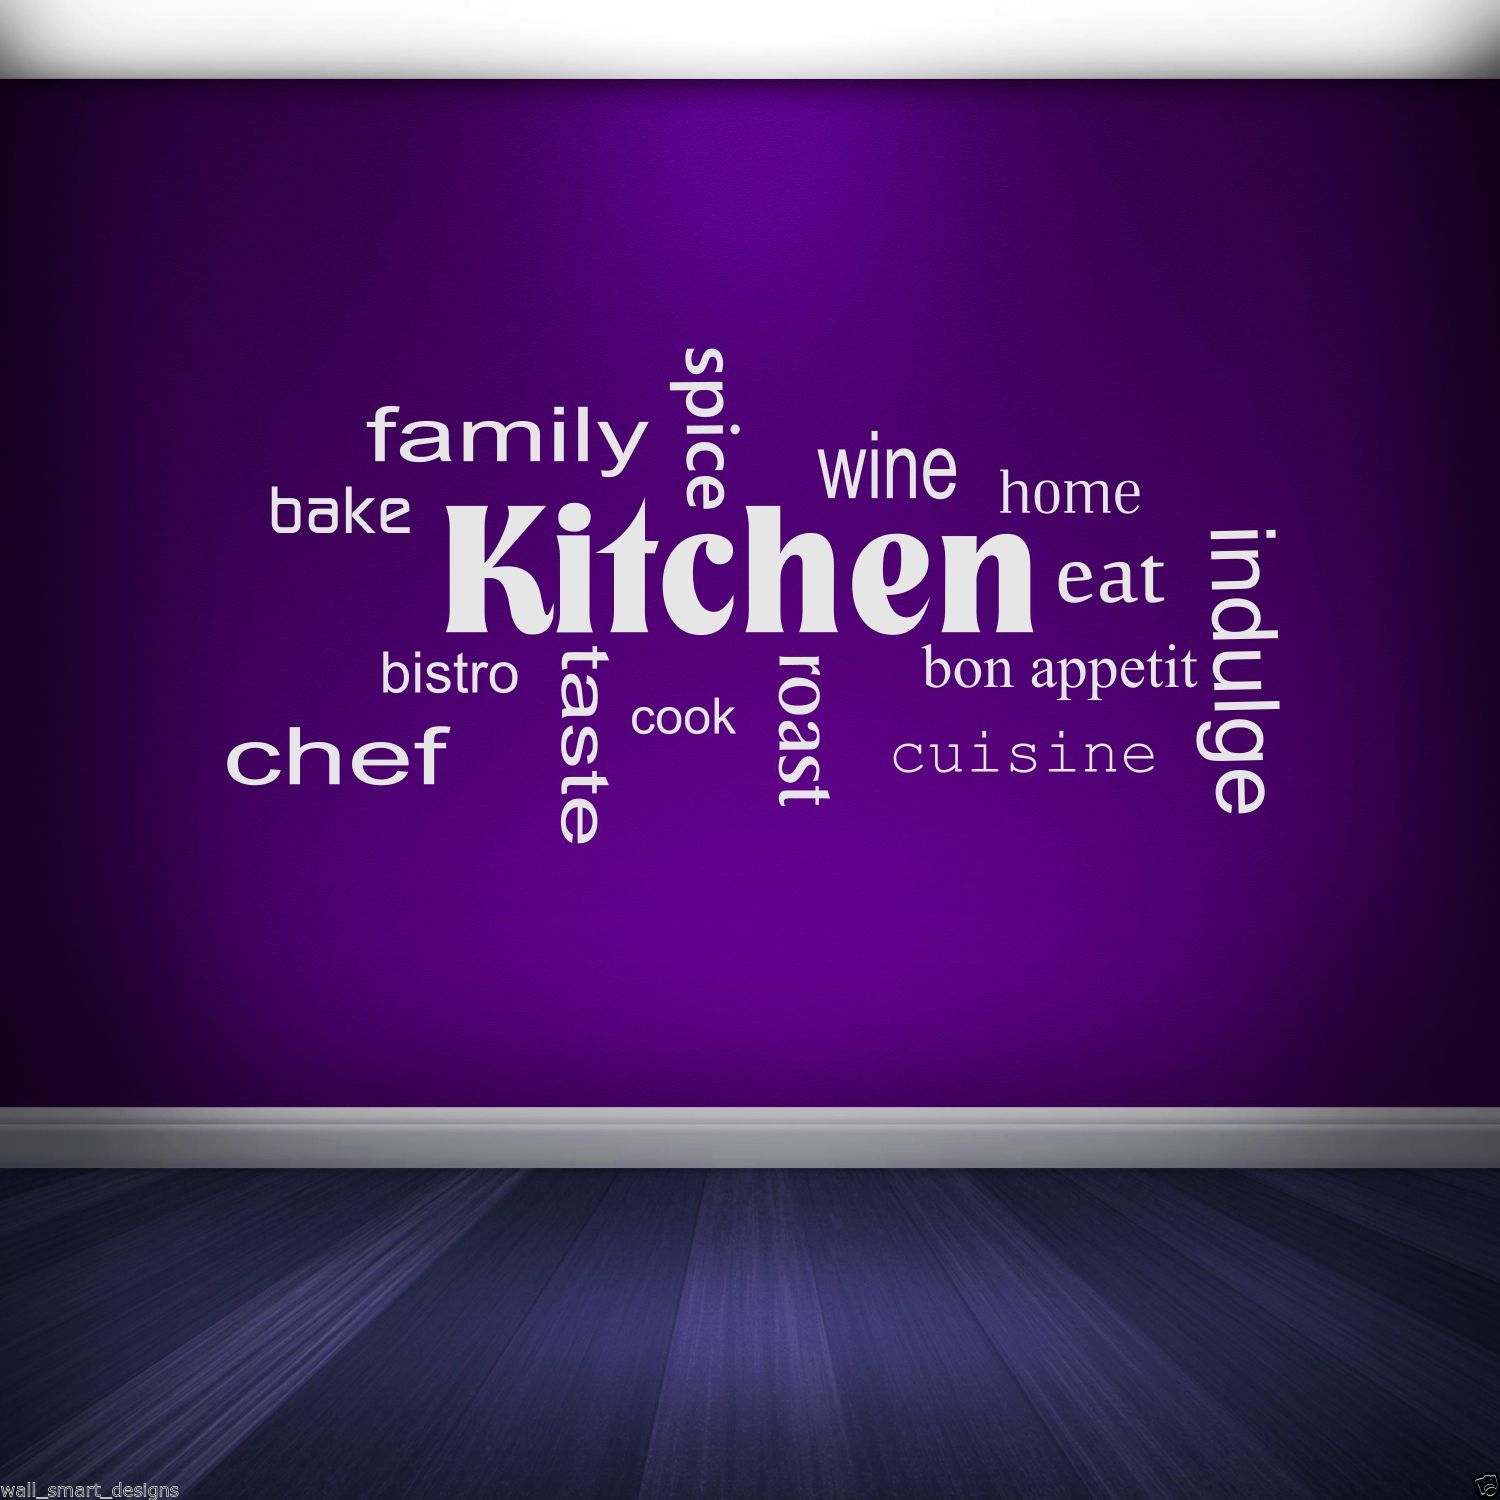 Family home quote rules vinyl wall art sticker mural decal home - Kitchen Words Phrases Wall Art Sticker Quote Decal Mural